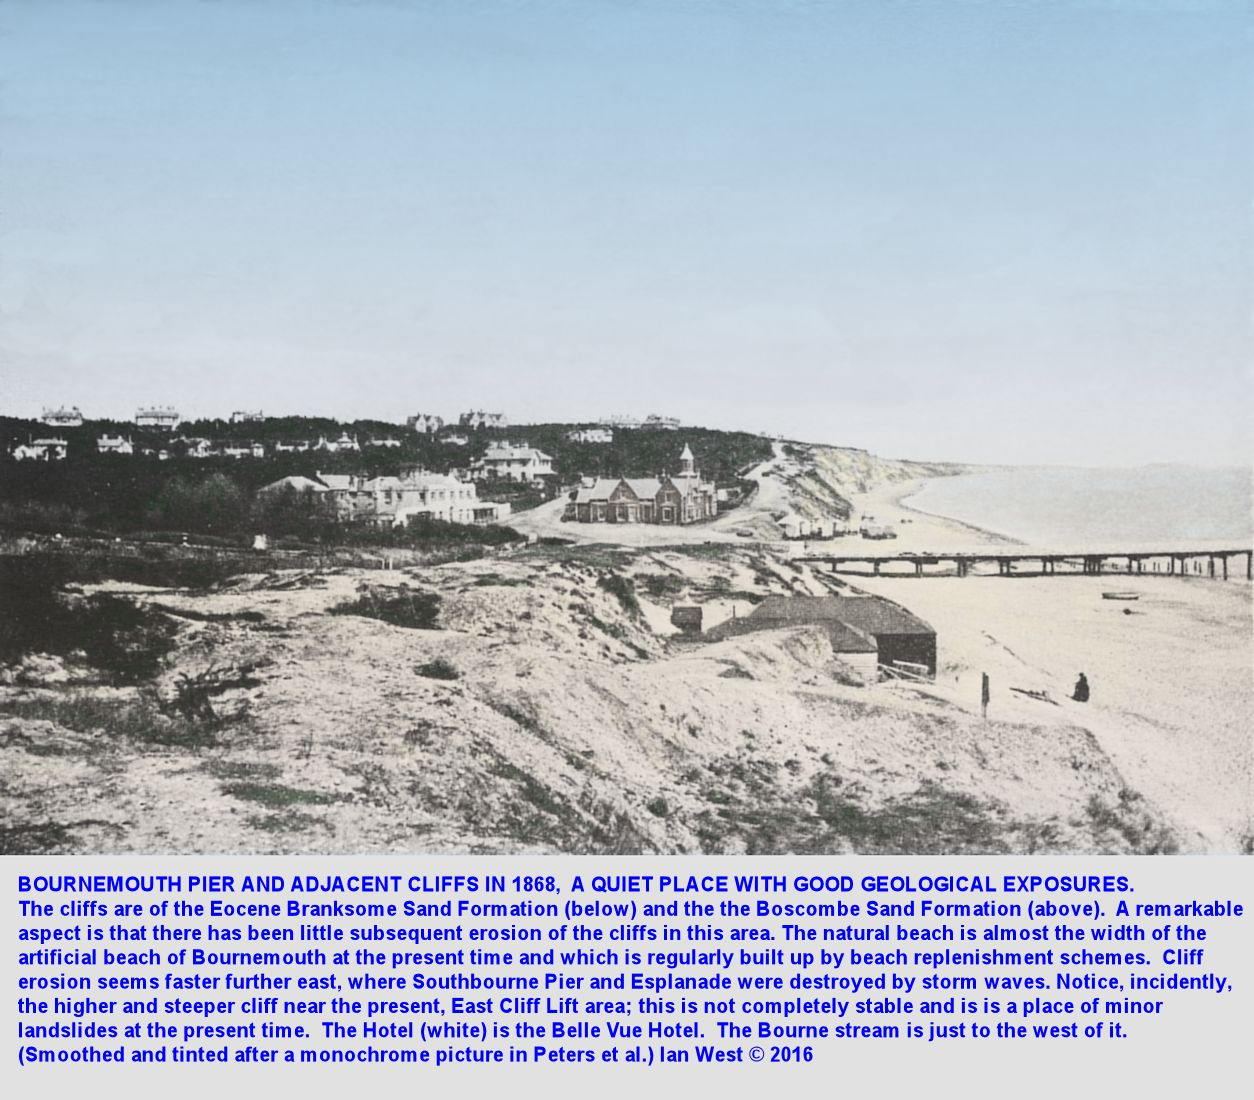 Bournemouth Pier and vicinity, Dorset, in 1868, at that time a quiet coastal locality with natural Eocene cliffs, no promenades and no crowds